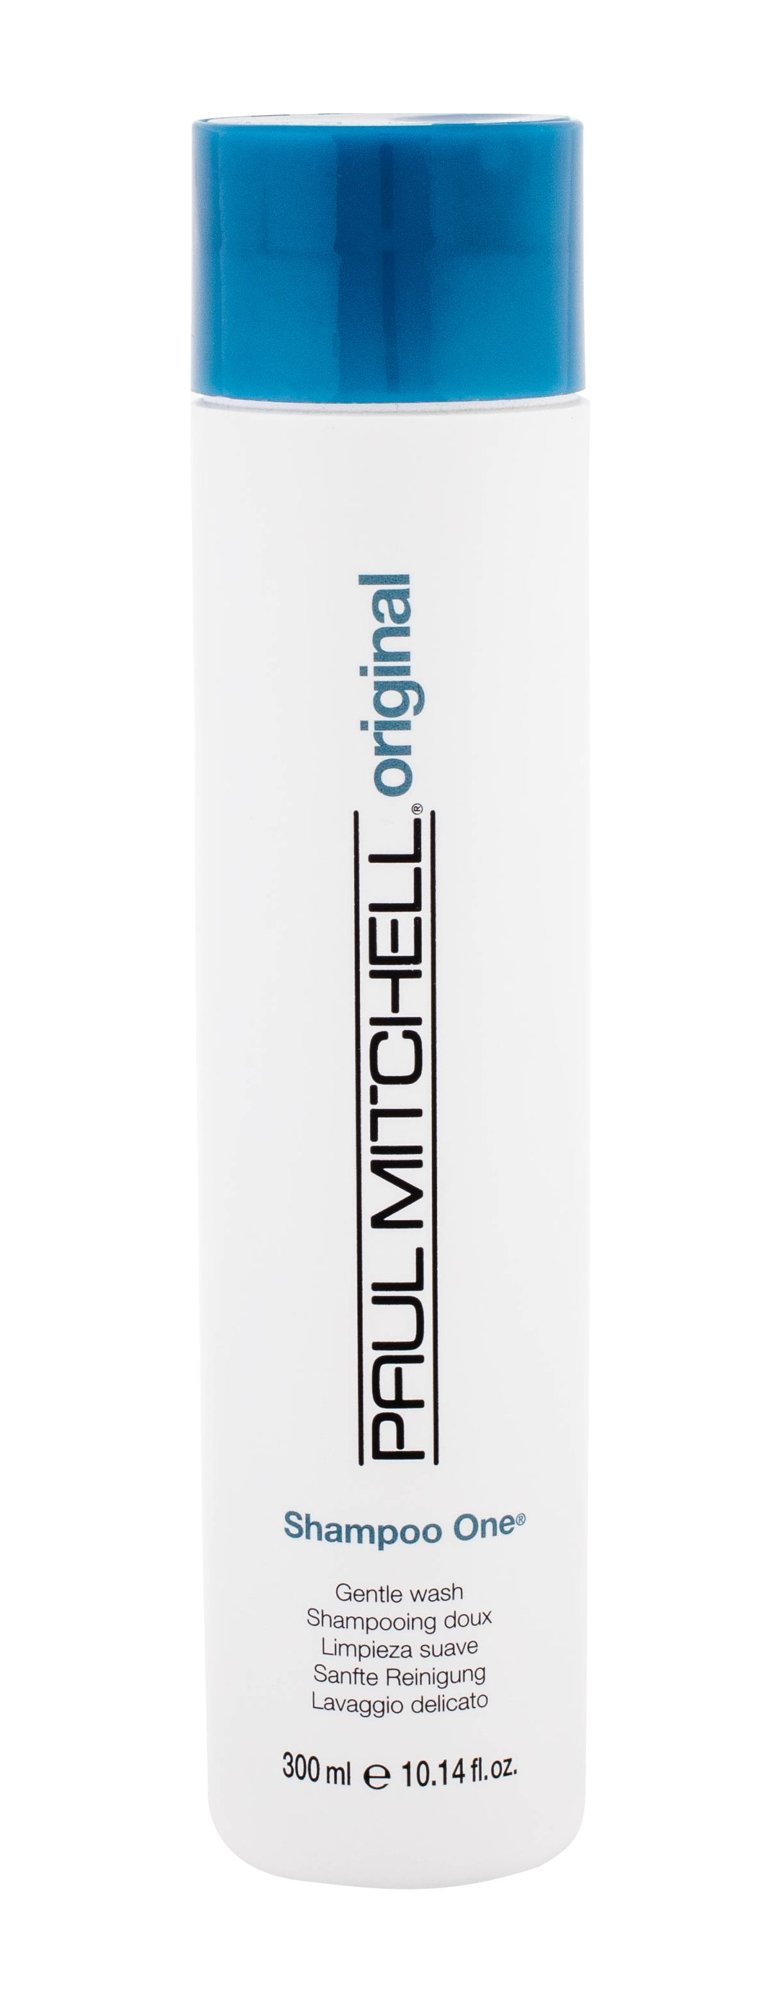 Paul Mitchell Original Cosmetic 300ml  Shampoo One